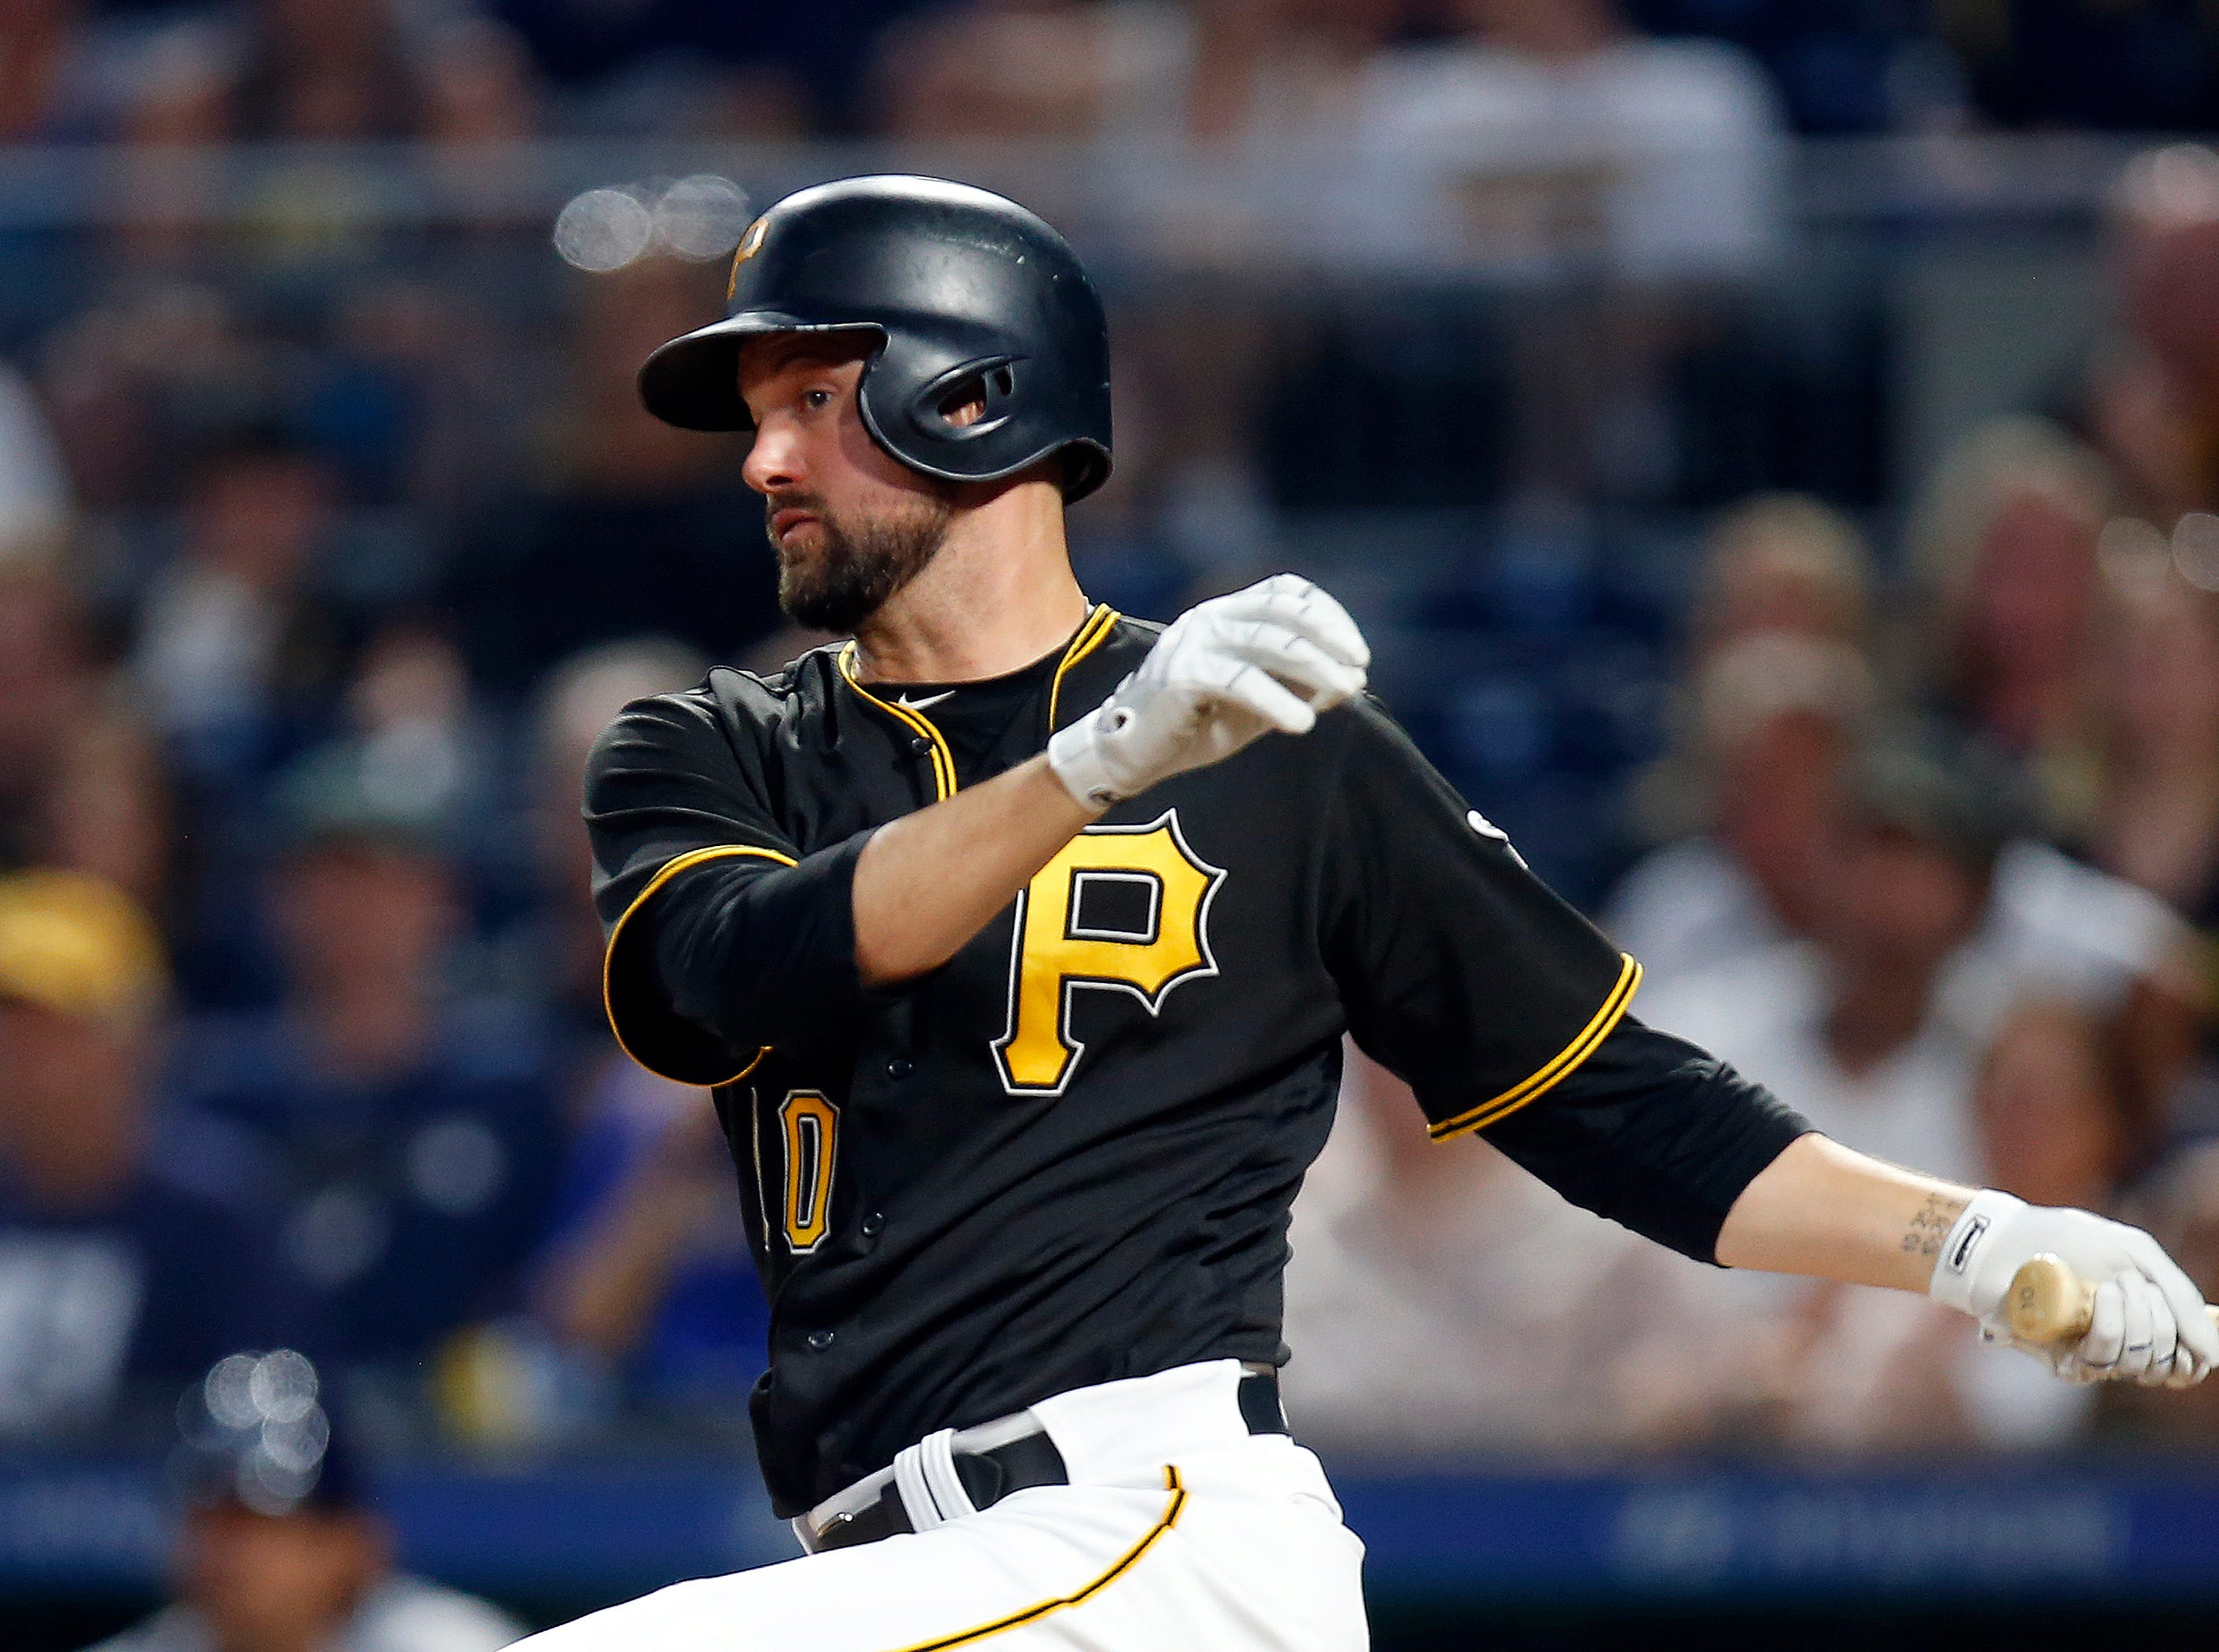 Jordy Mercer of the Pittsburgh Pirates hits a RBI double in the seventh inning against the Milwaukee Brewers at PNC Park on June 18, 2018 in Pittsburgh, Pennsylvania.